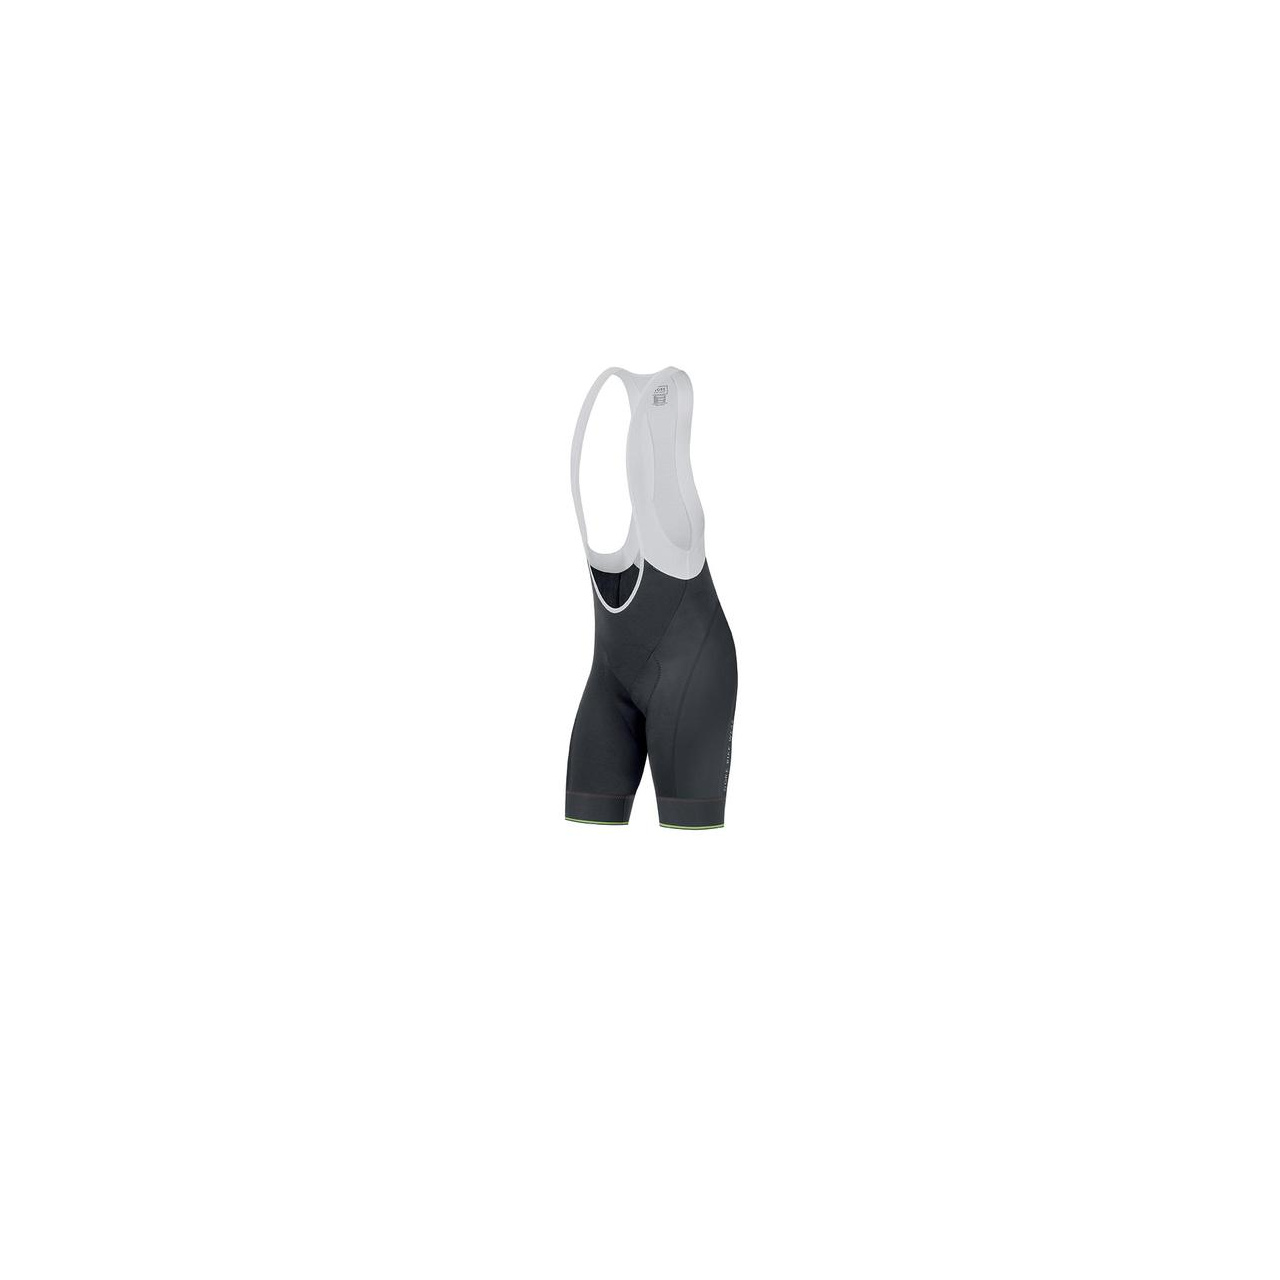 Gore Power 3.0 Bibtights Short+